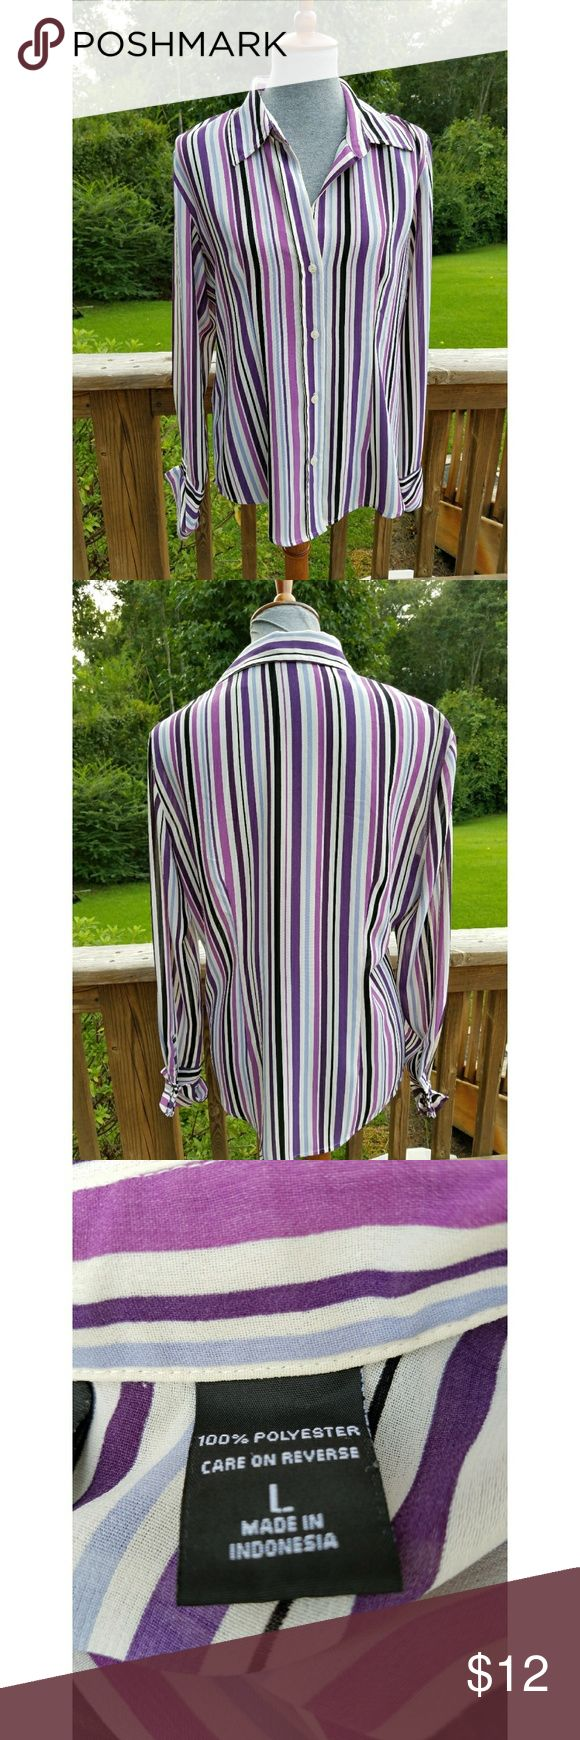 New York and Company Top New York and Company Top  Size Large  100% Polyester  Like New Condition New York and Company Tops Button Down Shirts